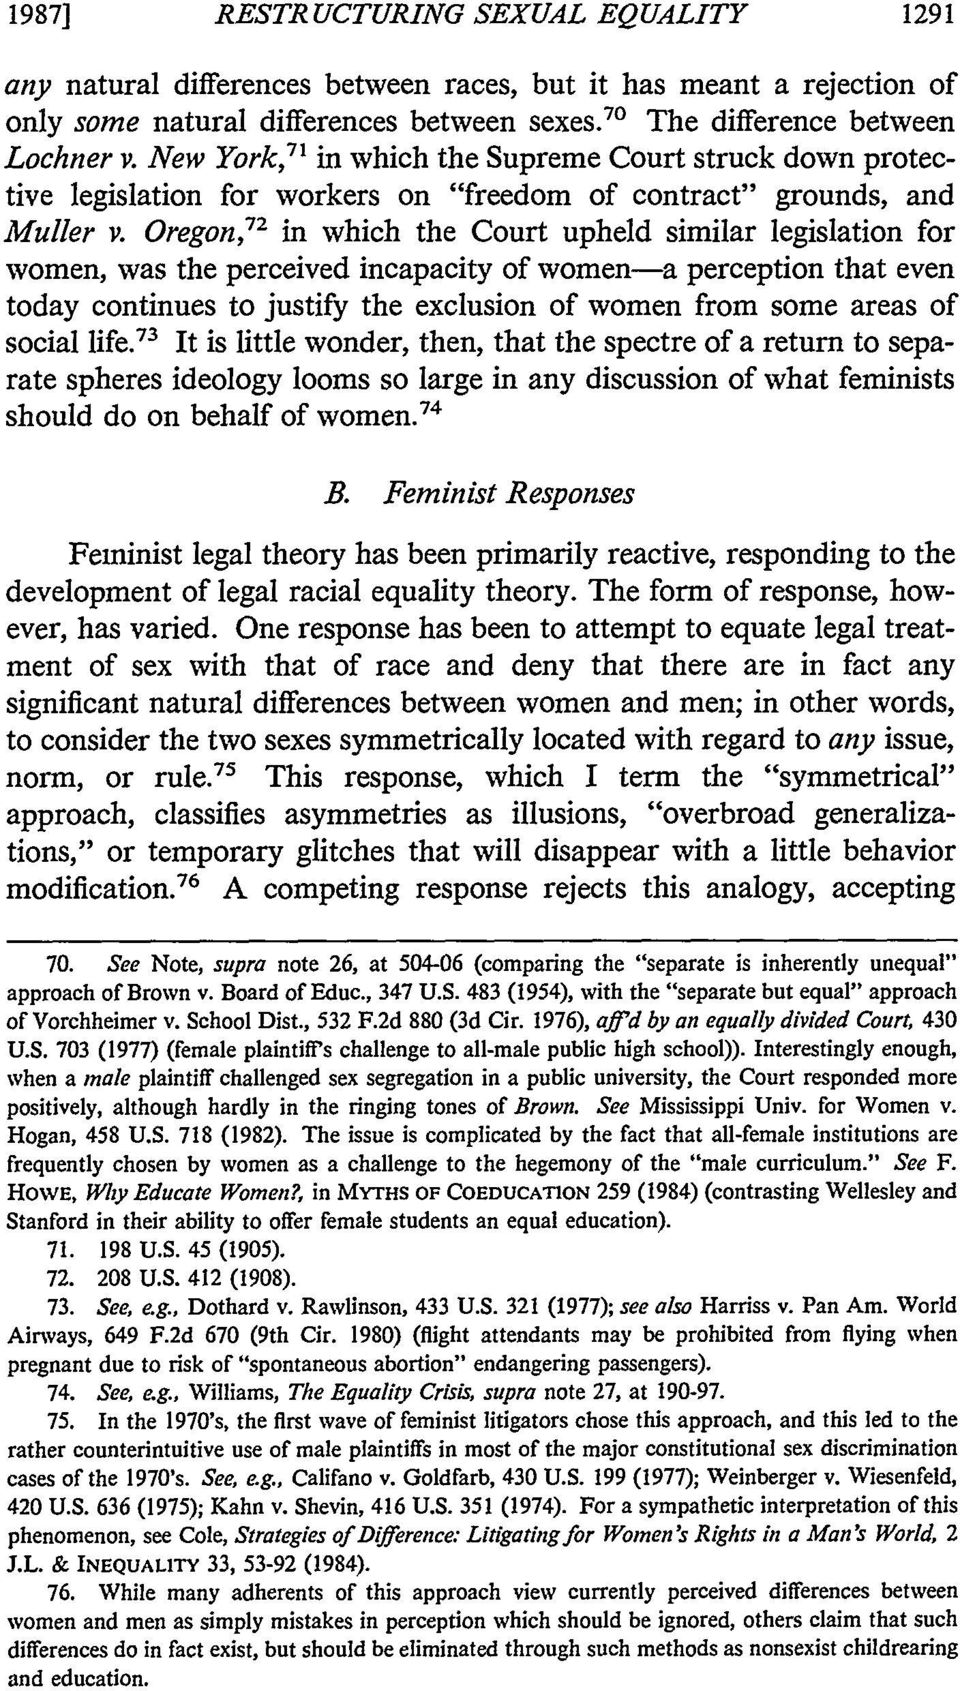 Oregon, in which the Court upheld similar legislation for women, was the perceived incapacity of women-a perception that even today continues to justify the exclusion of women from some areas of